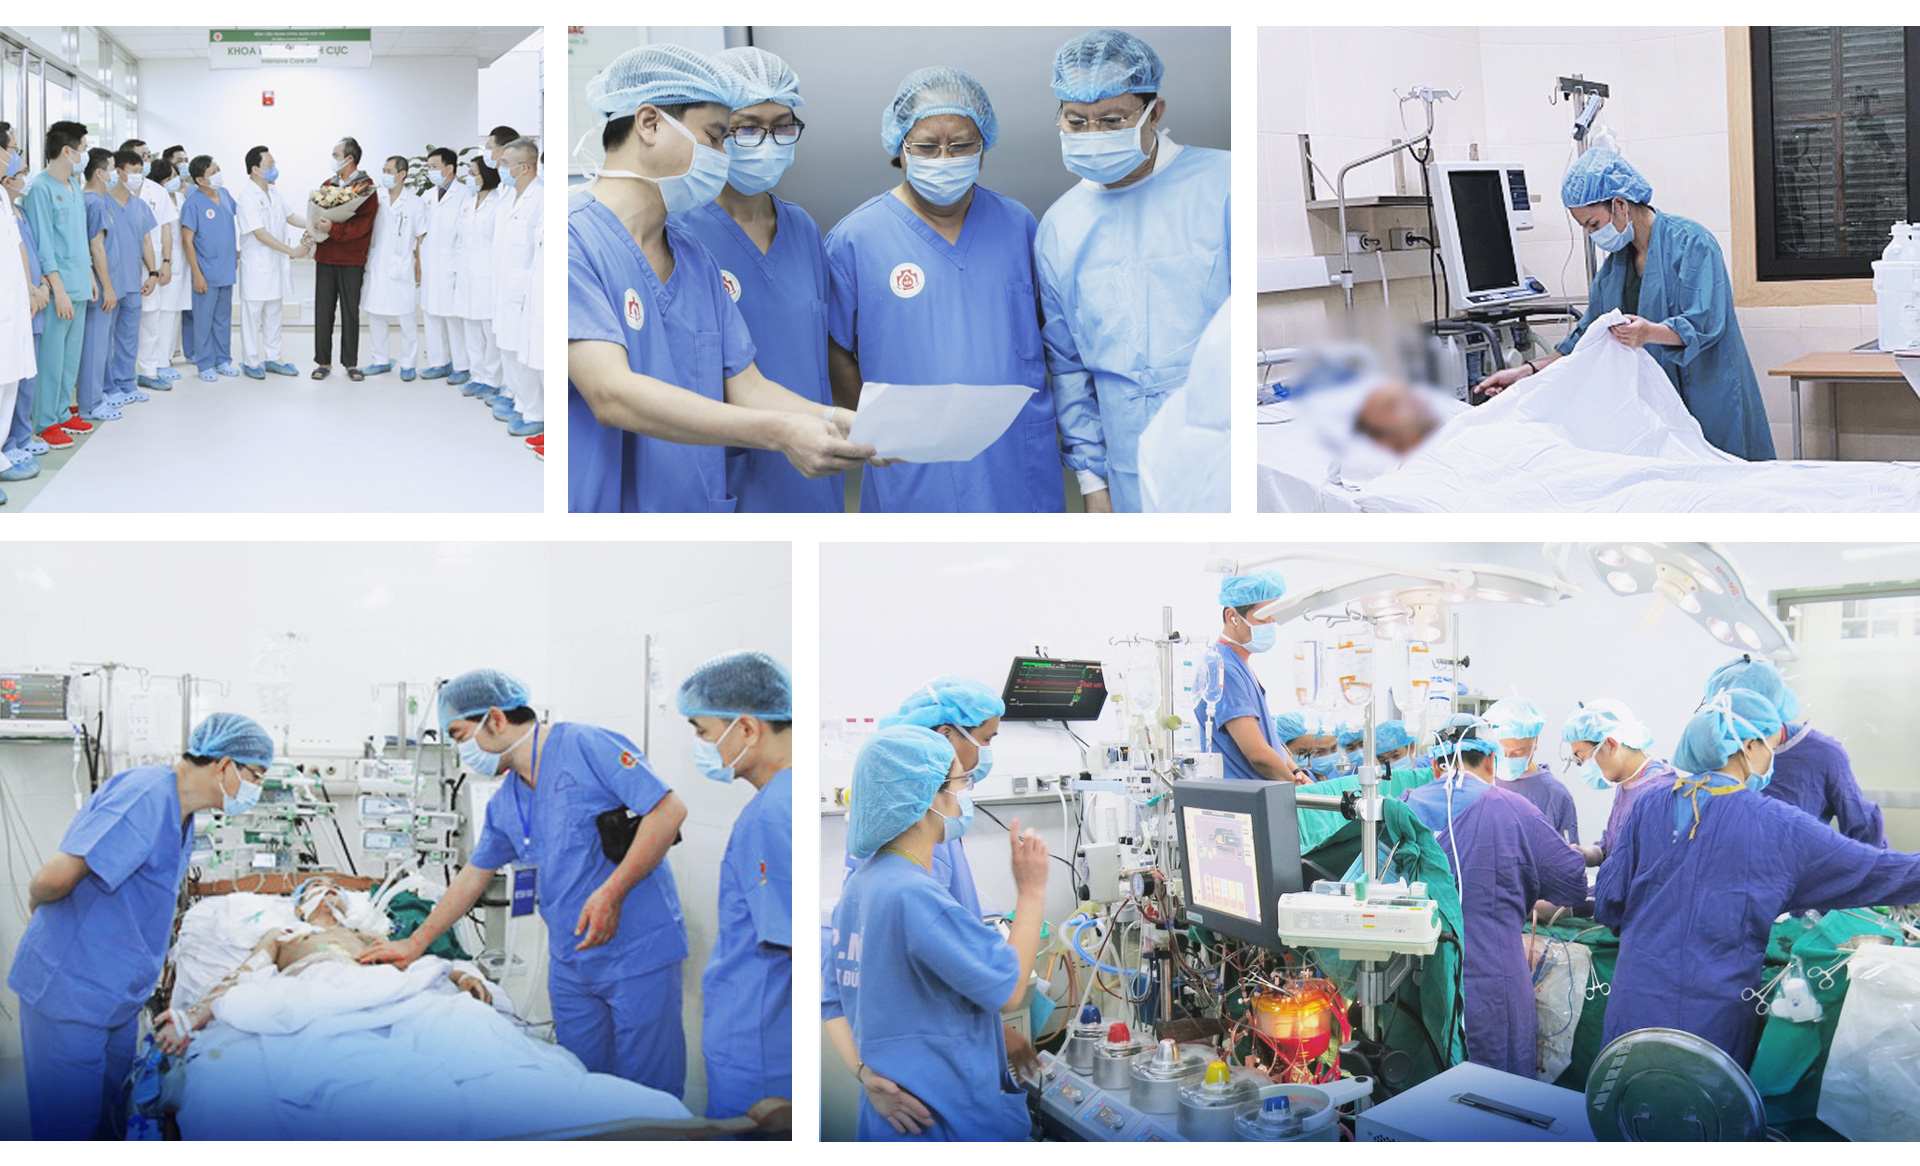 A photo collage of surgeons undertaking the Truc Nhi - Dieu Nhi seperation surgery in Ho Chi Minh City.